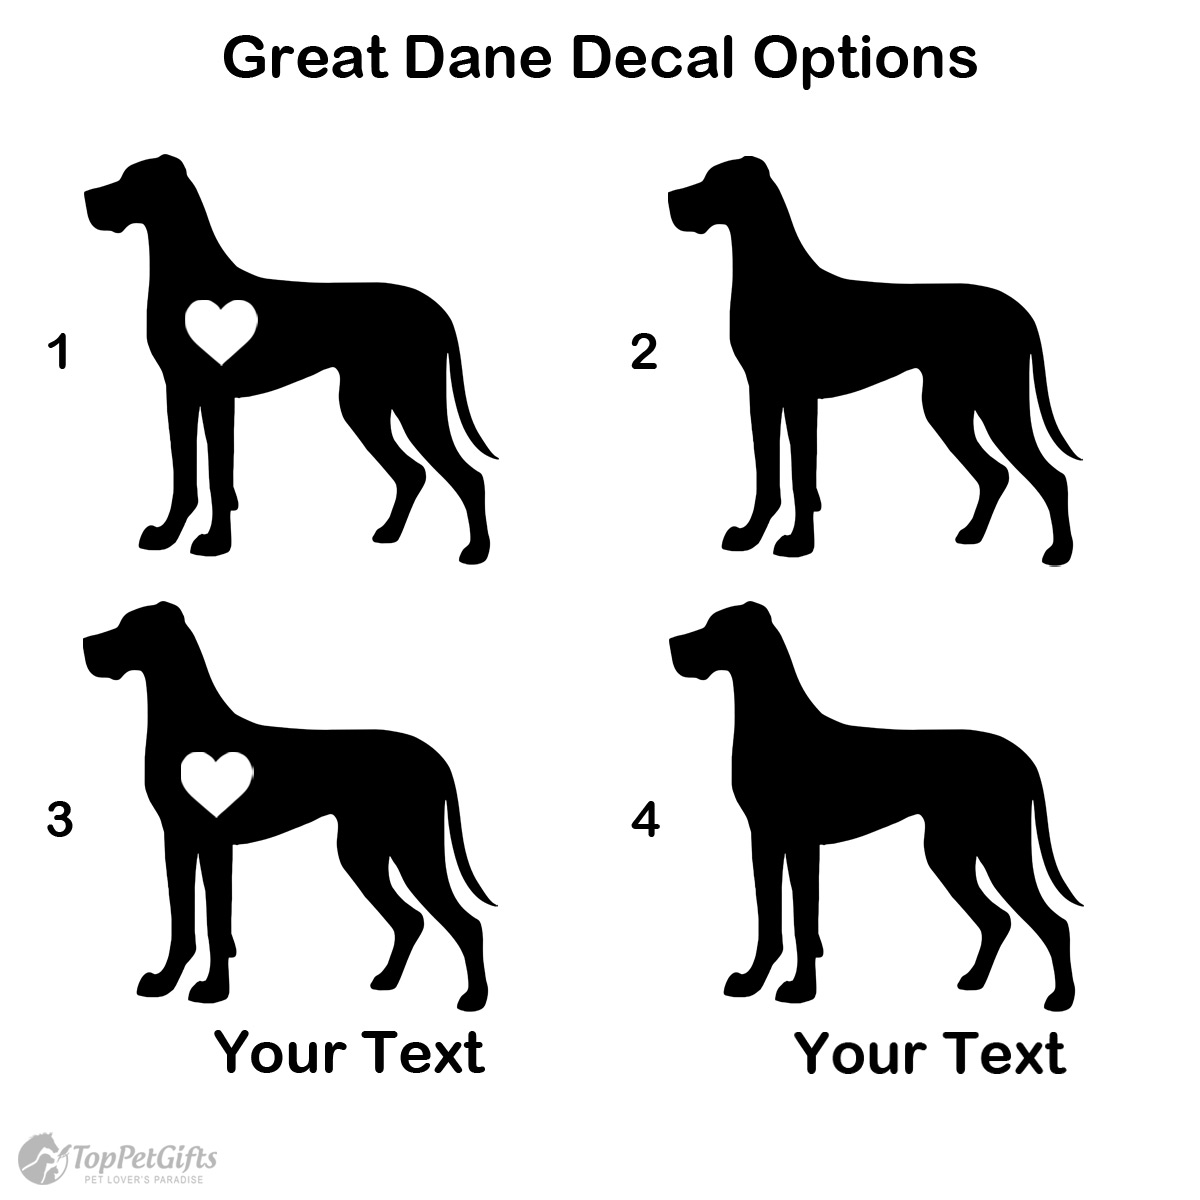 Personalized Great Dane Decal